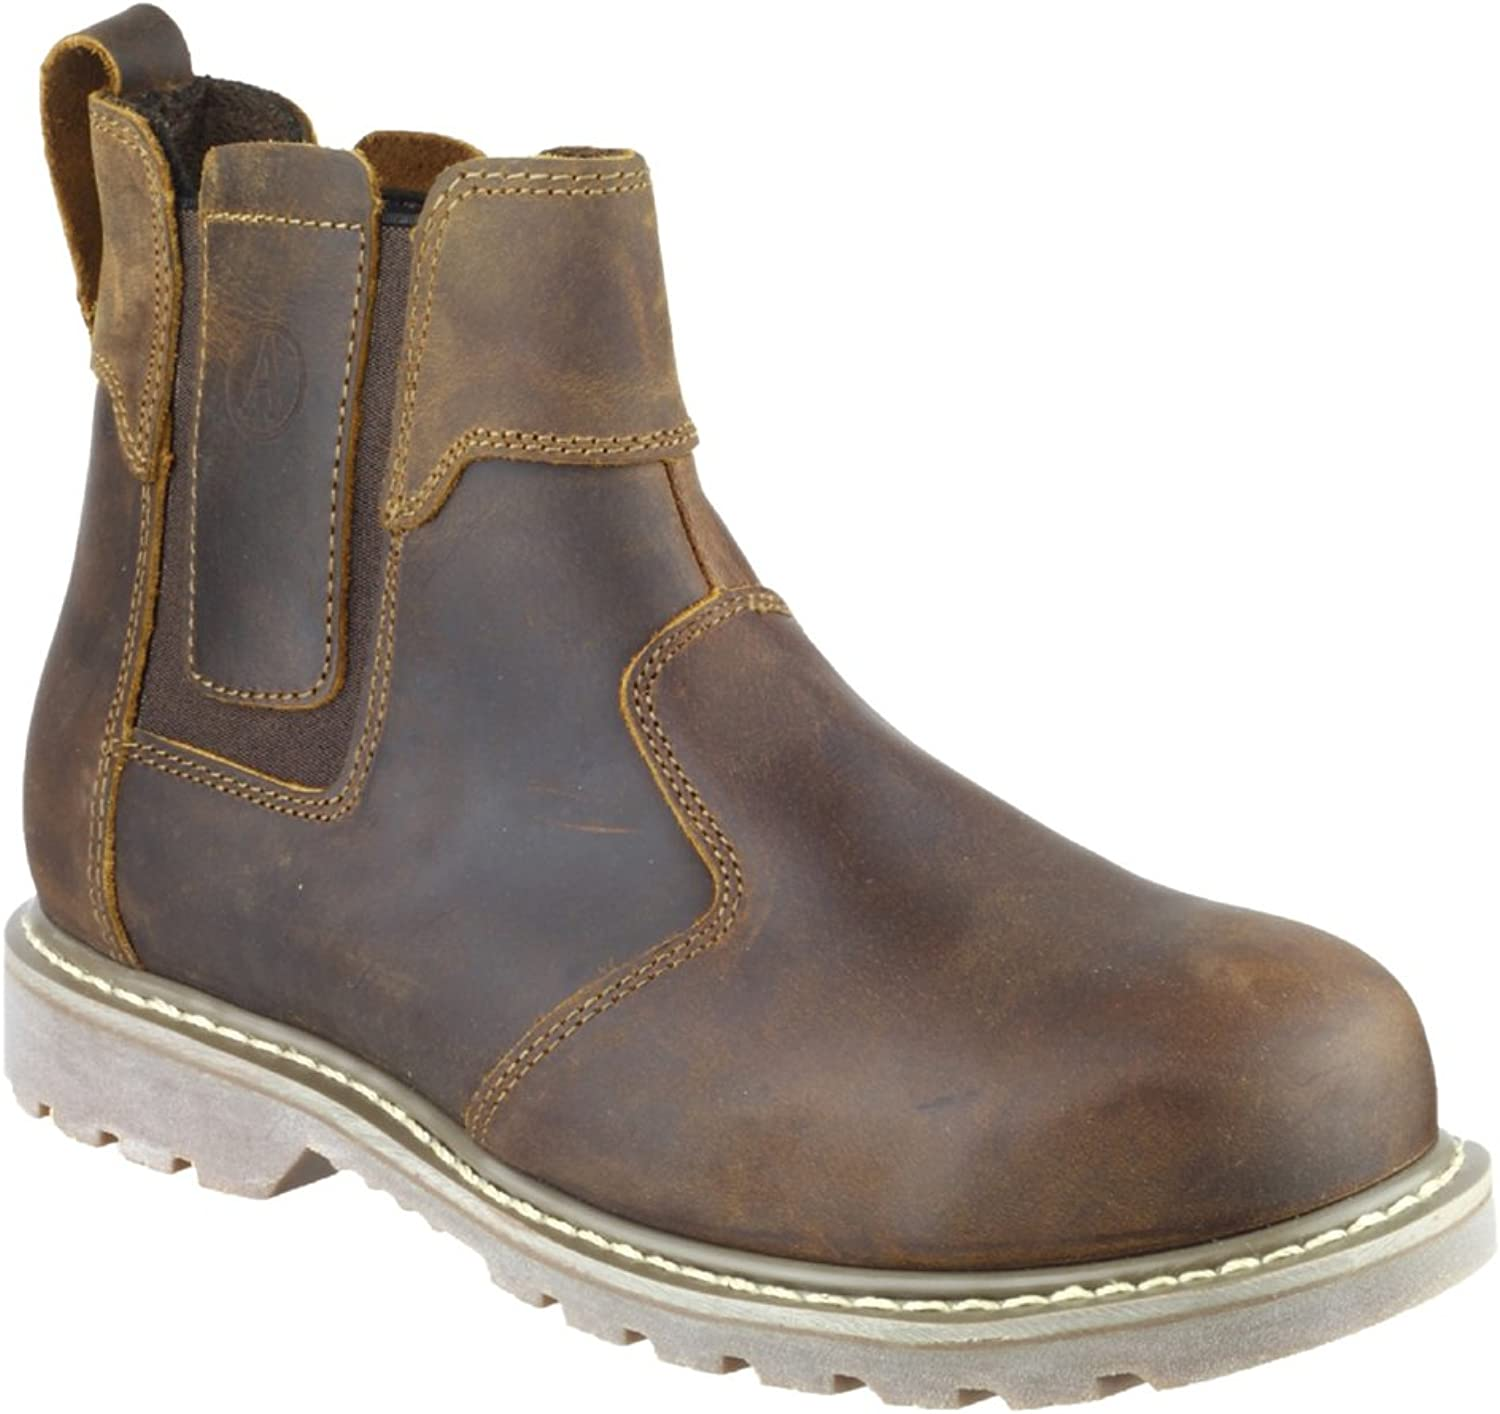 Mens Amblers Brown Crazy Horse Leather Dealer Safety Work Boots Sizes 6 7 8 9 10 11 12 13